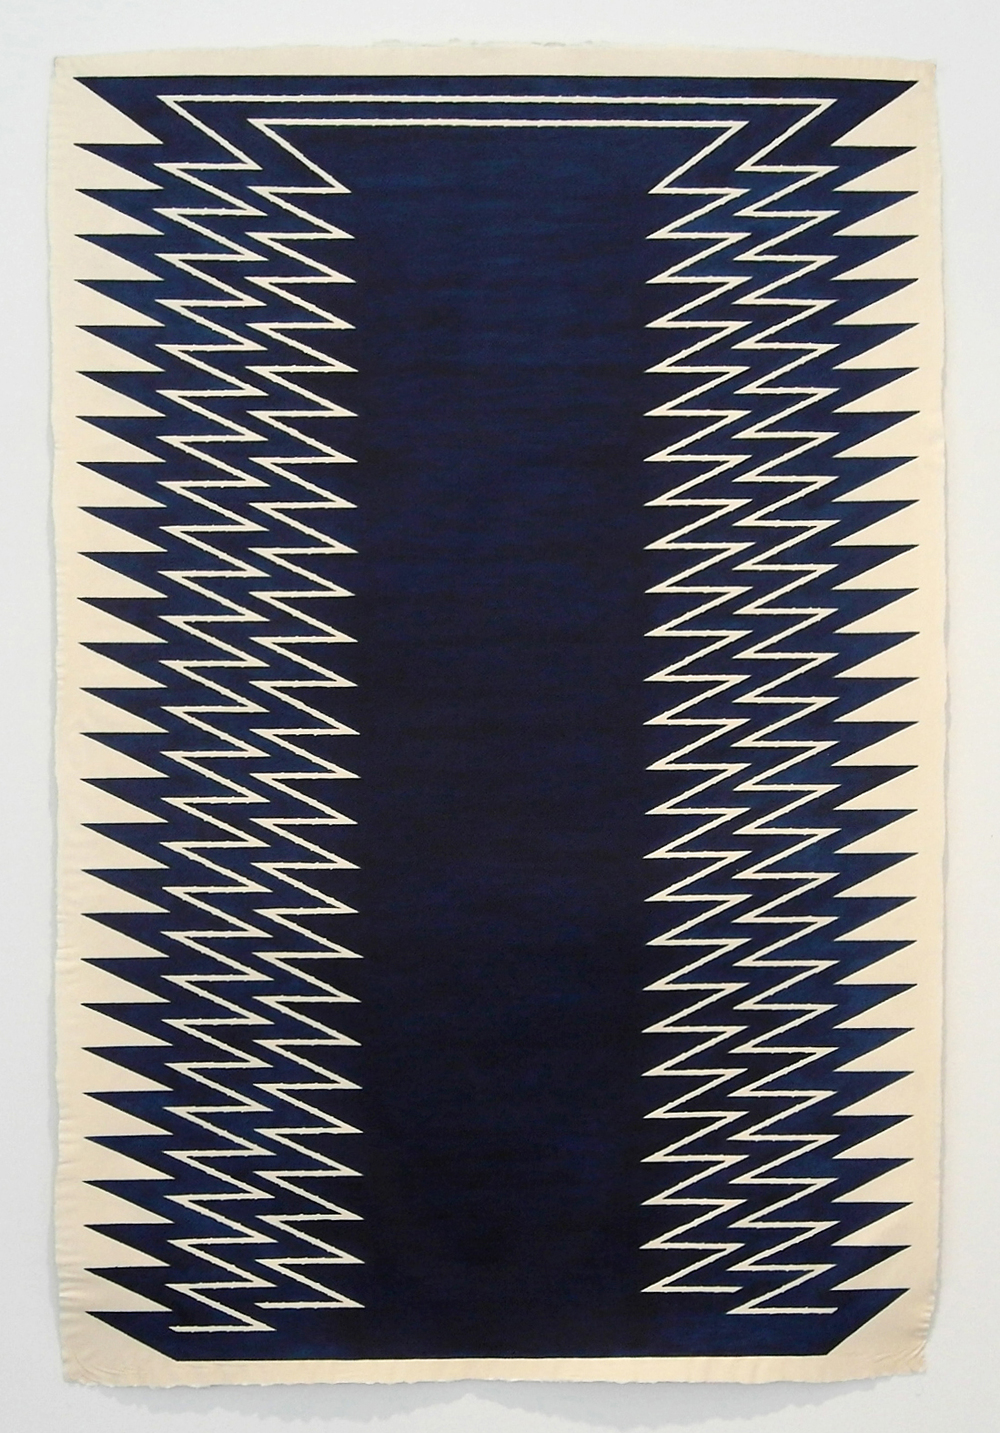 Awake, Sleeper , 2012  Leather dye on handmade paper  60 x 40 inches